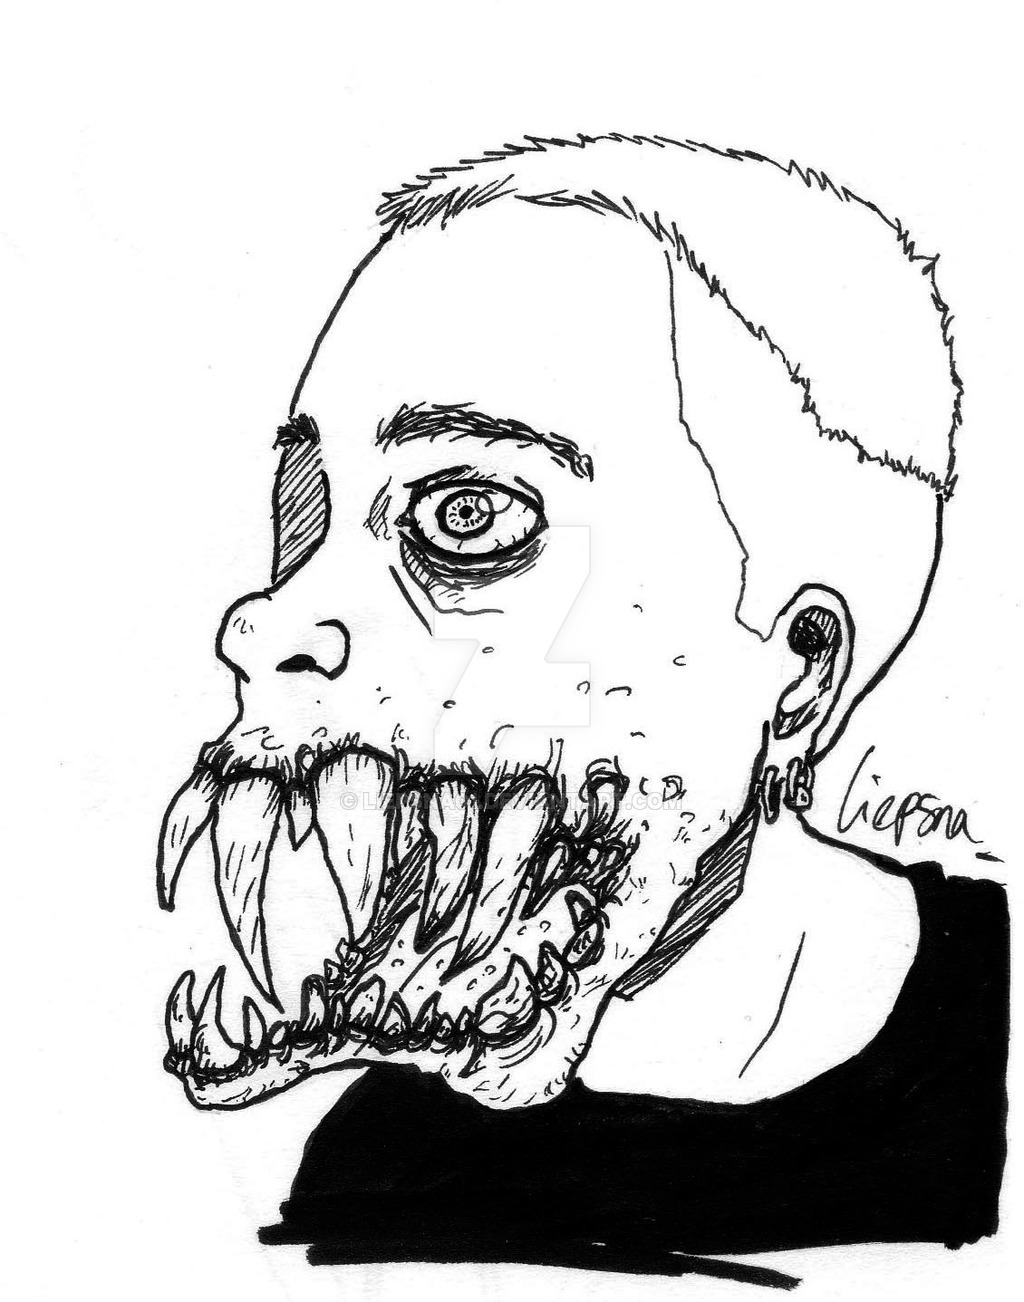 1024x1302 Self Portrait With Monster Teeth By Liepsna01